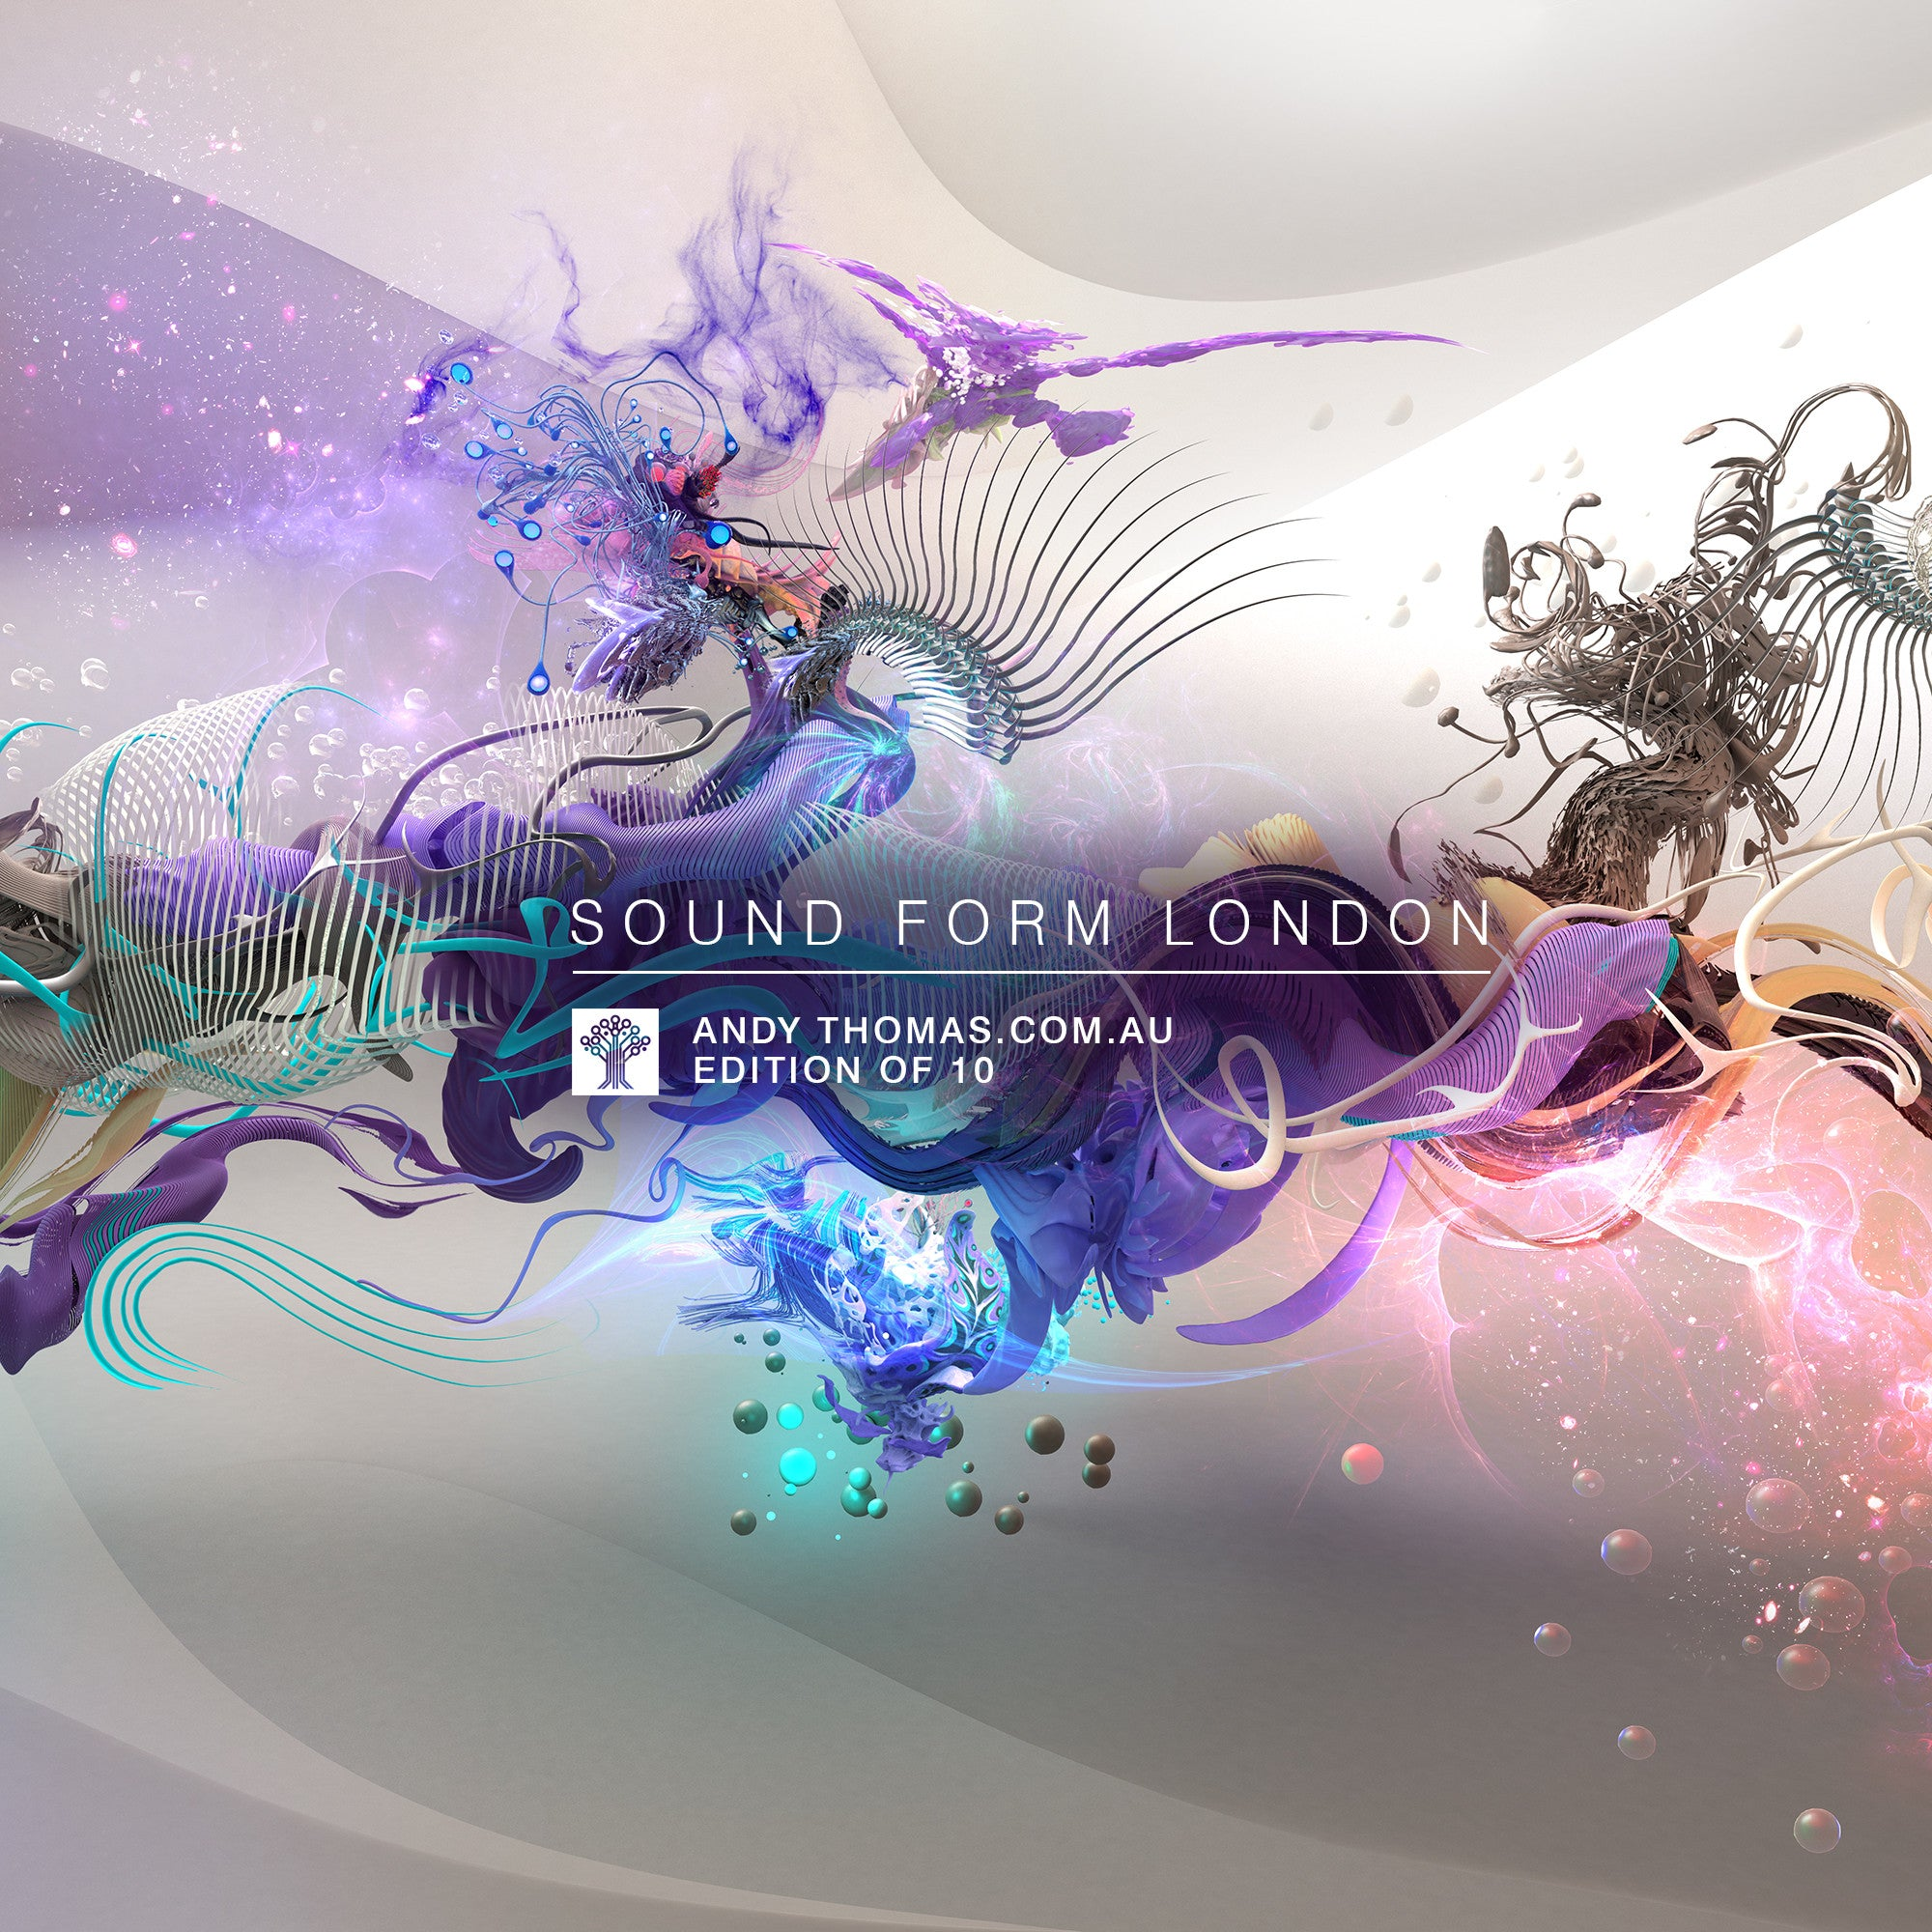 Sound Form London